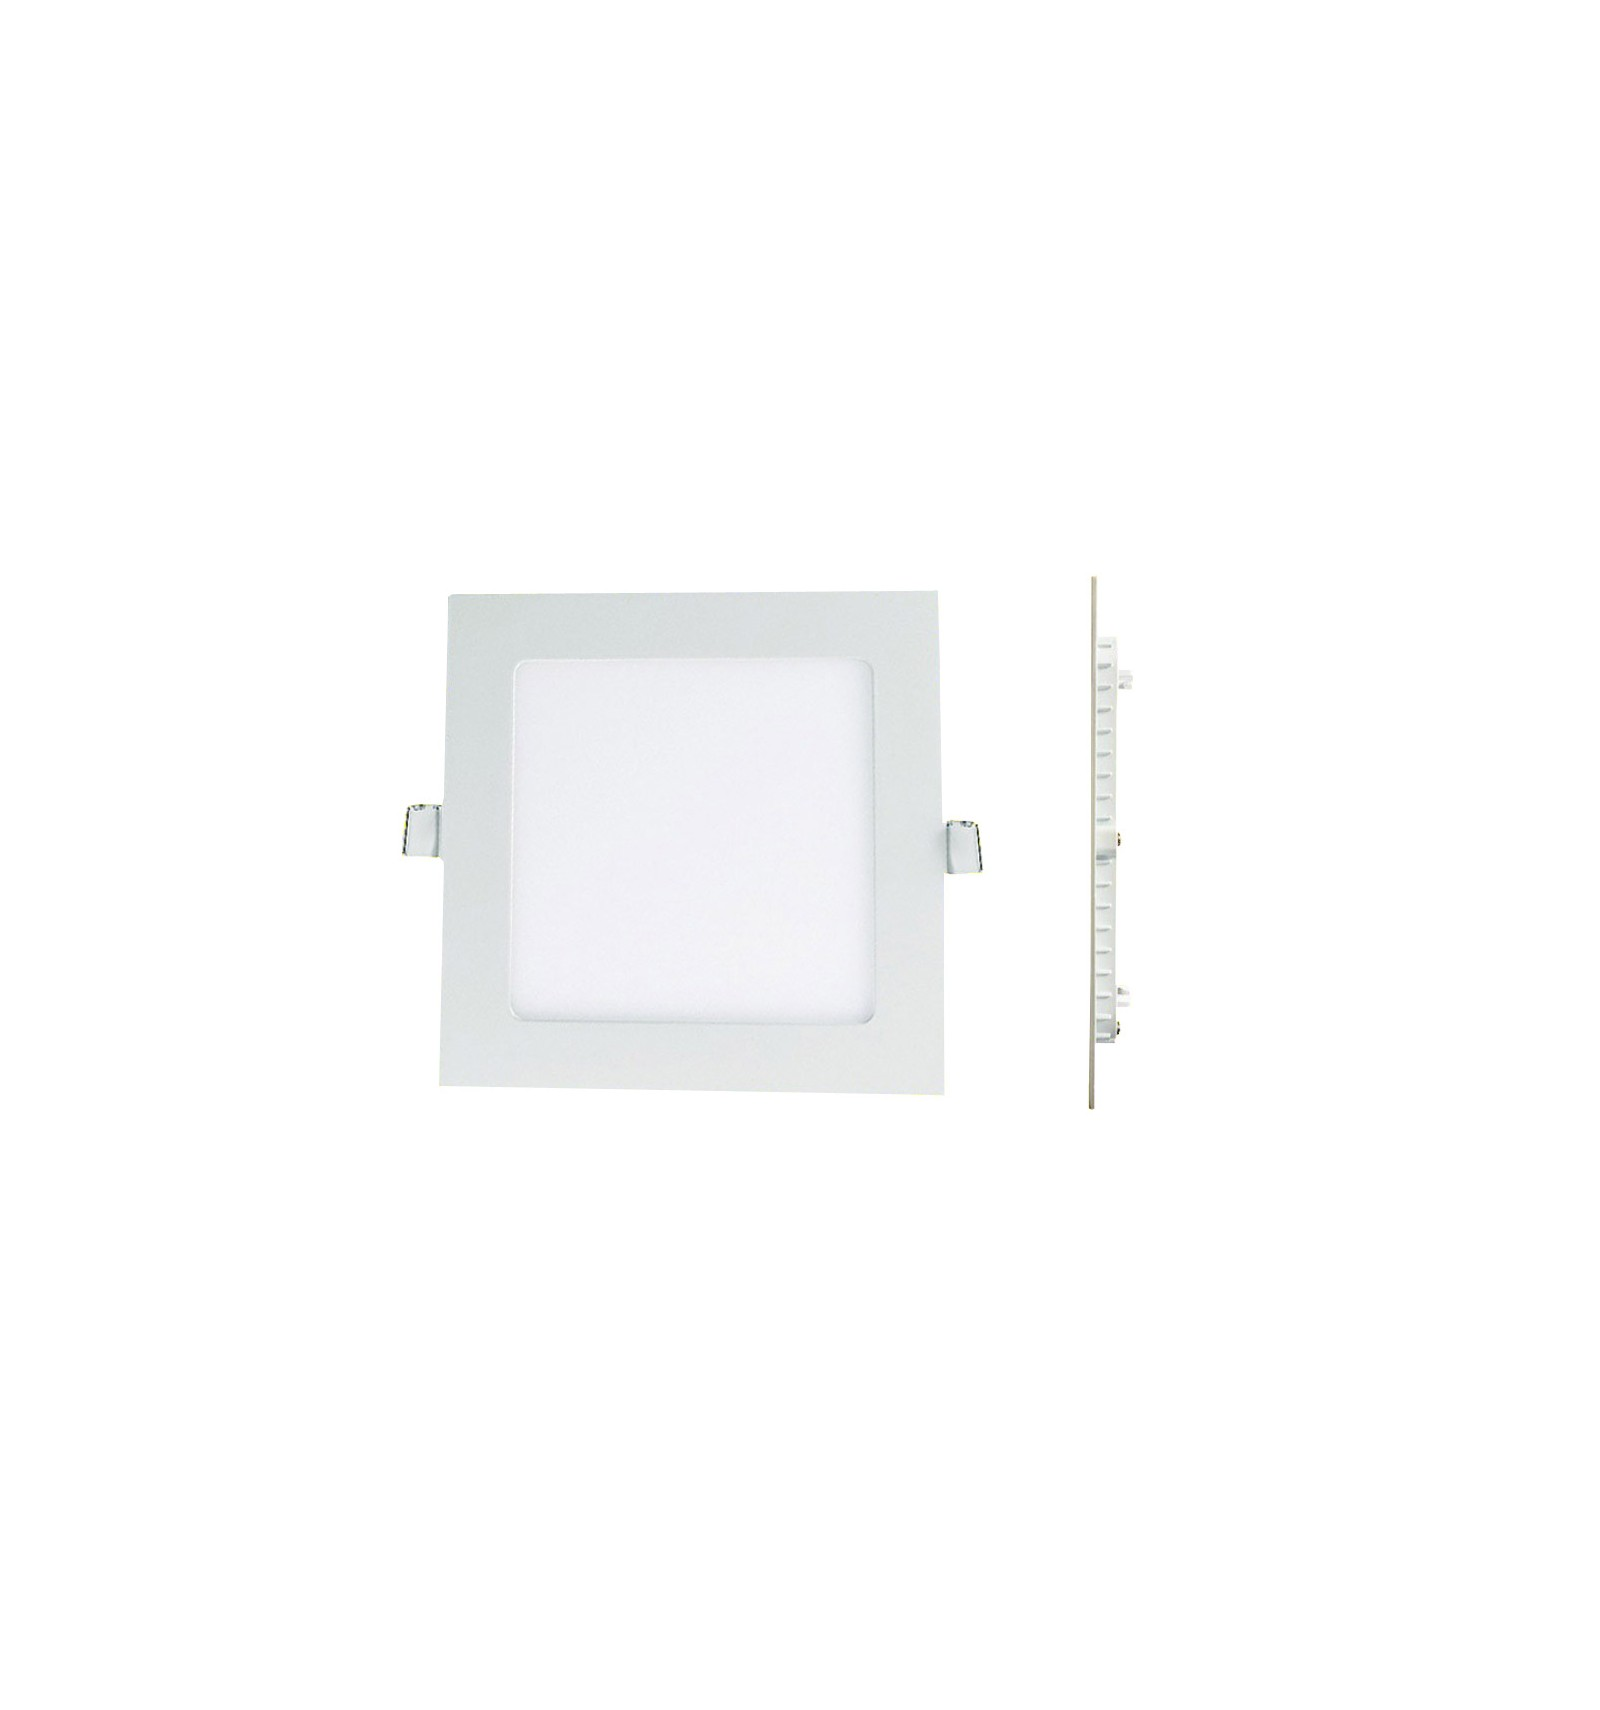 Spot encastrable led carre downlight panel extra plat 25w - Spot led encastrable plafond extra plat ...